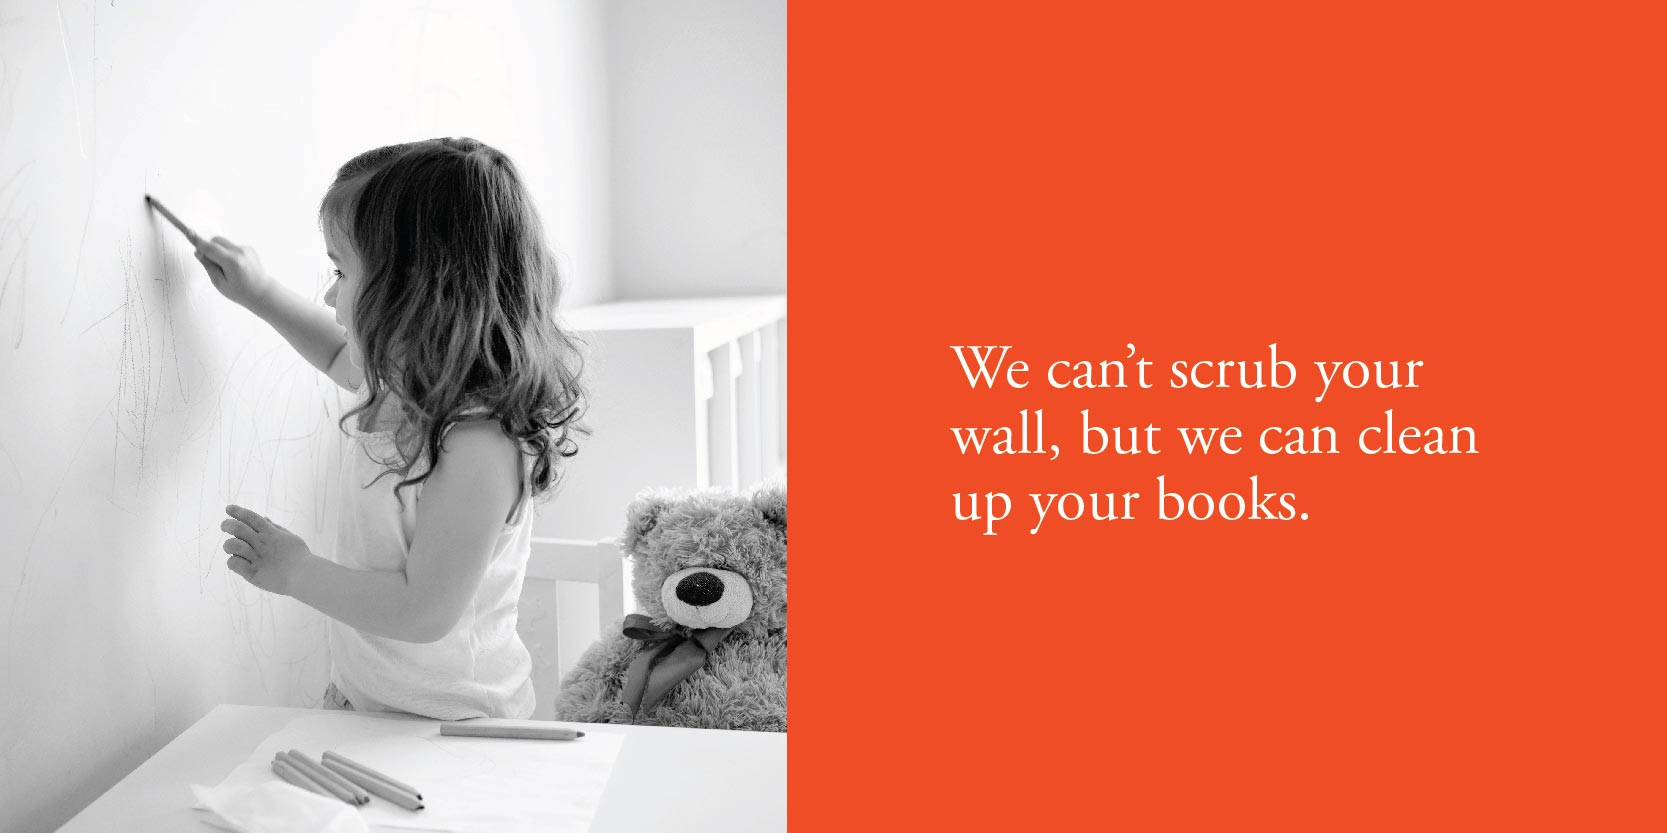 We can't scrub your wall, but we can clean up your books.